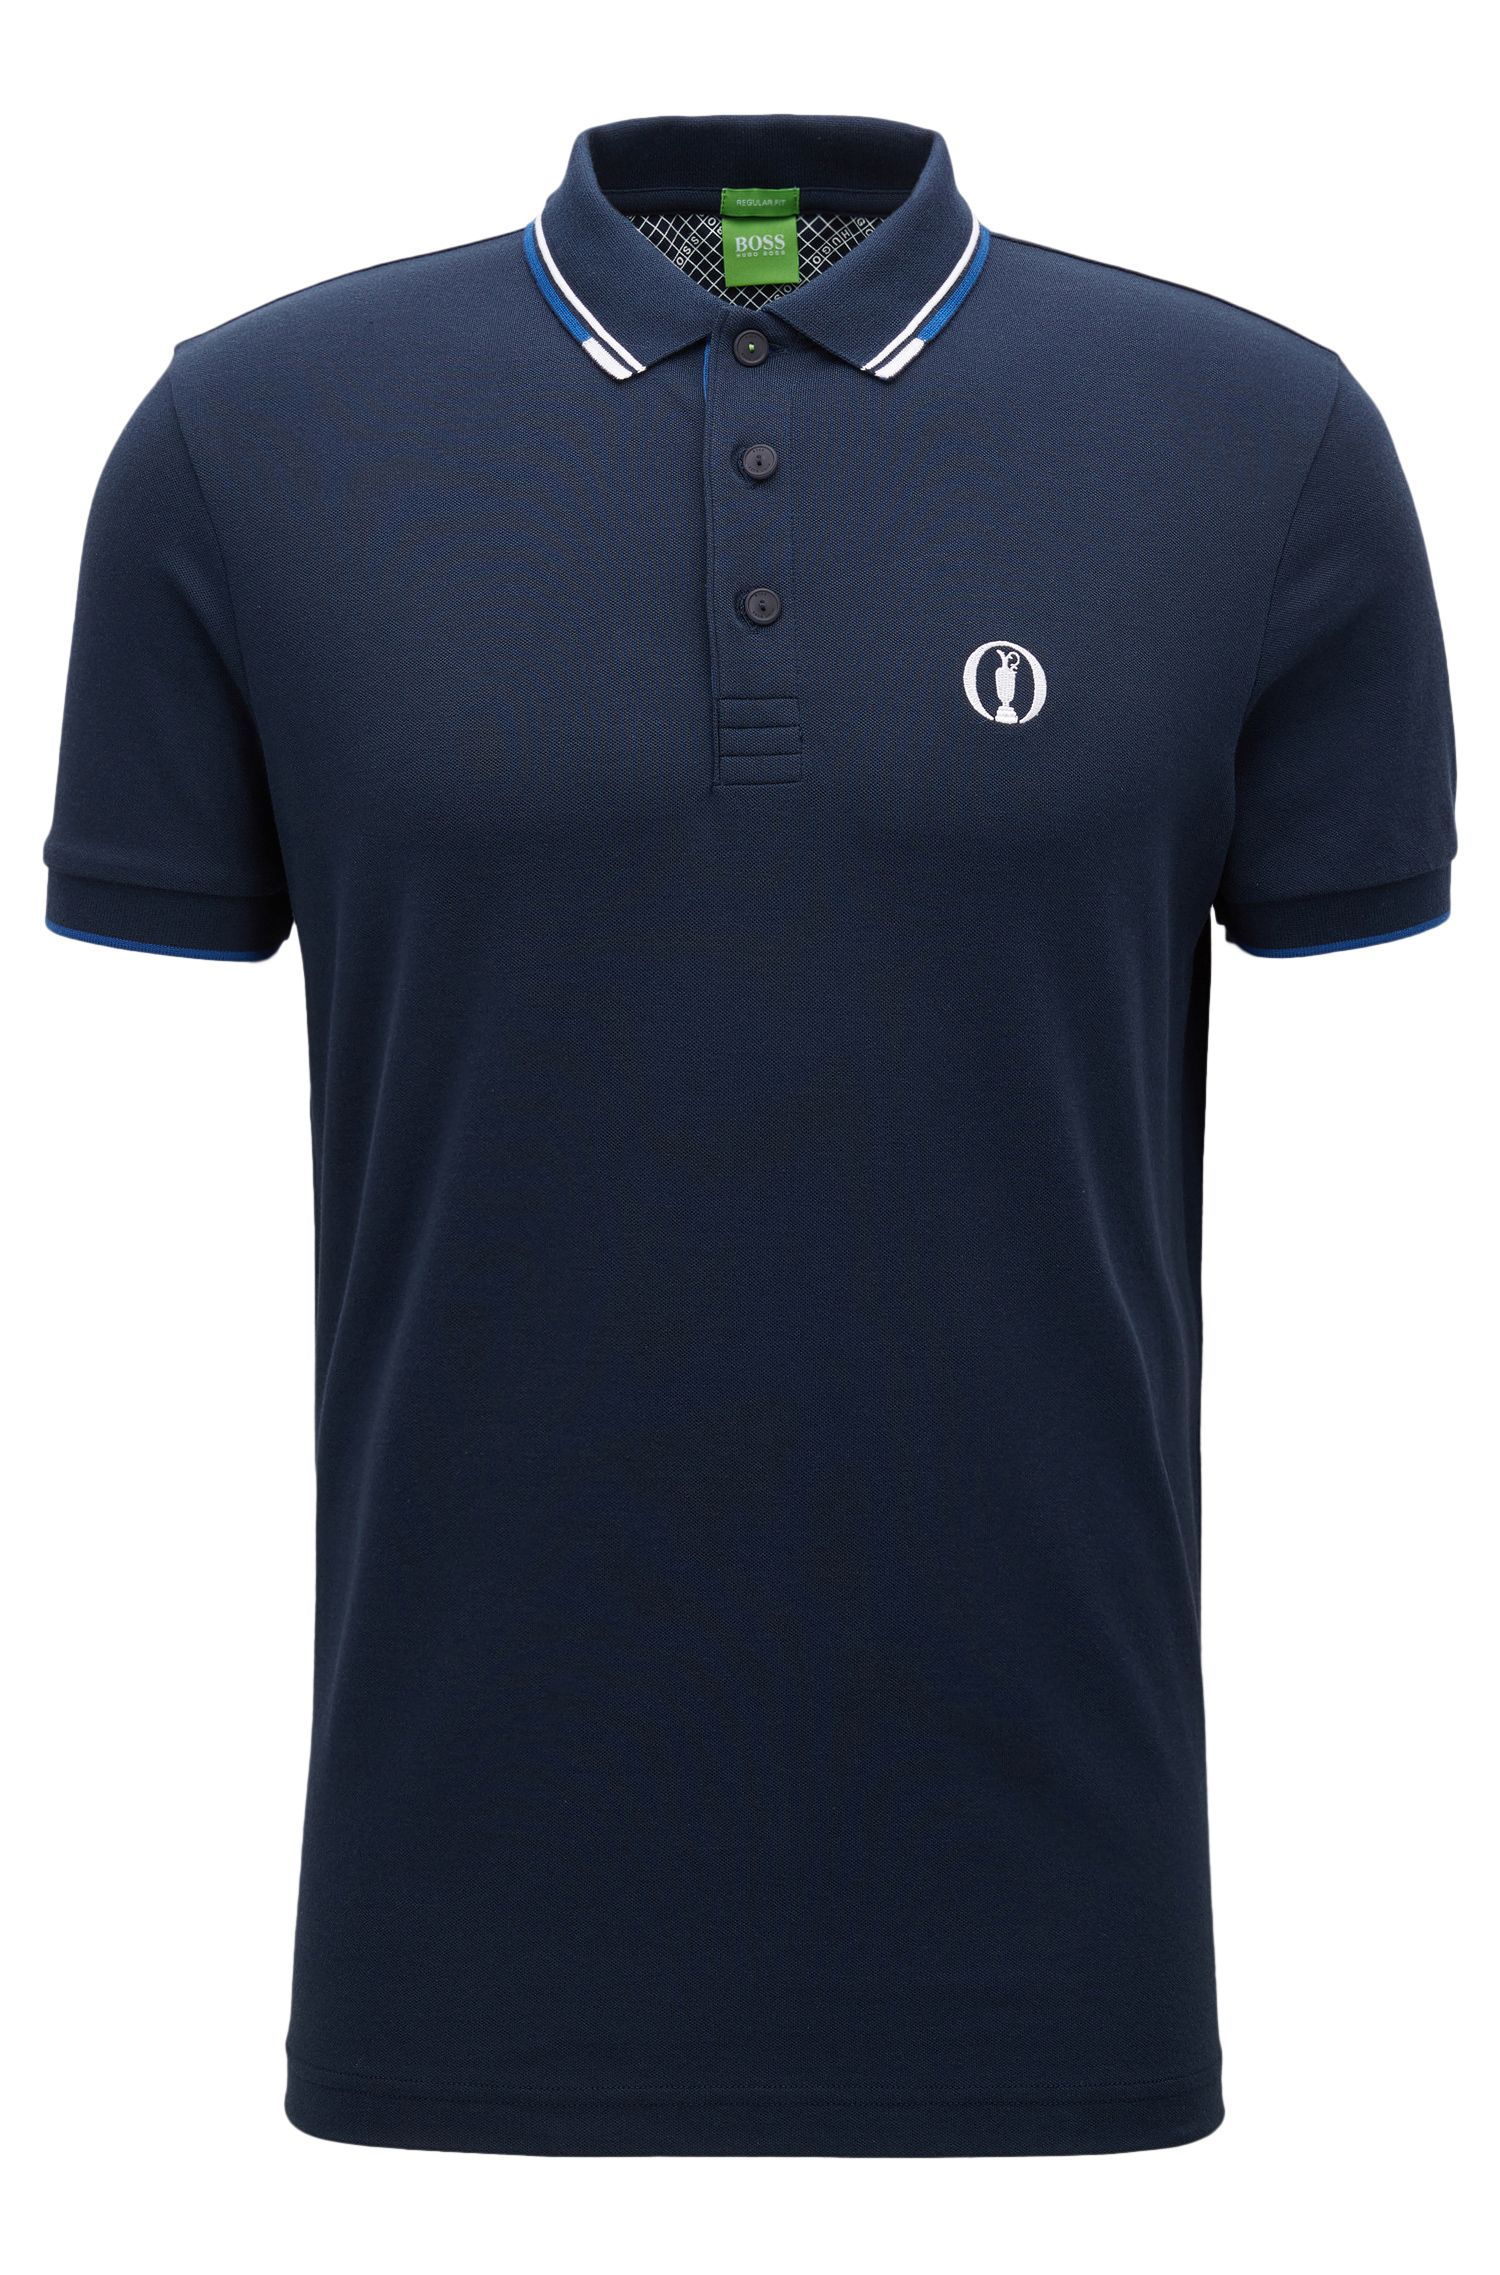 The Open Collection by BOSS polo shirt in cotton-blend piqué